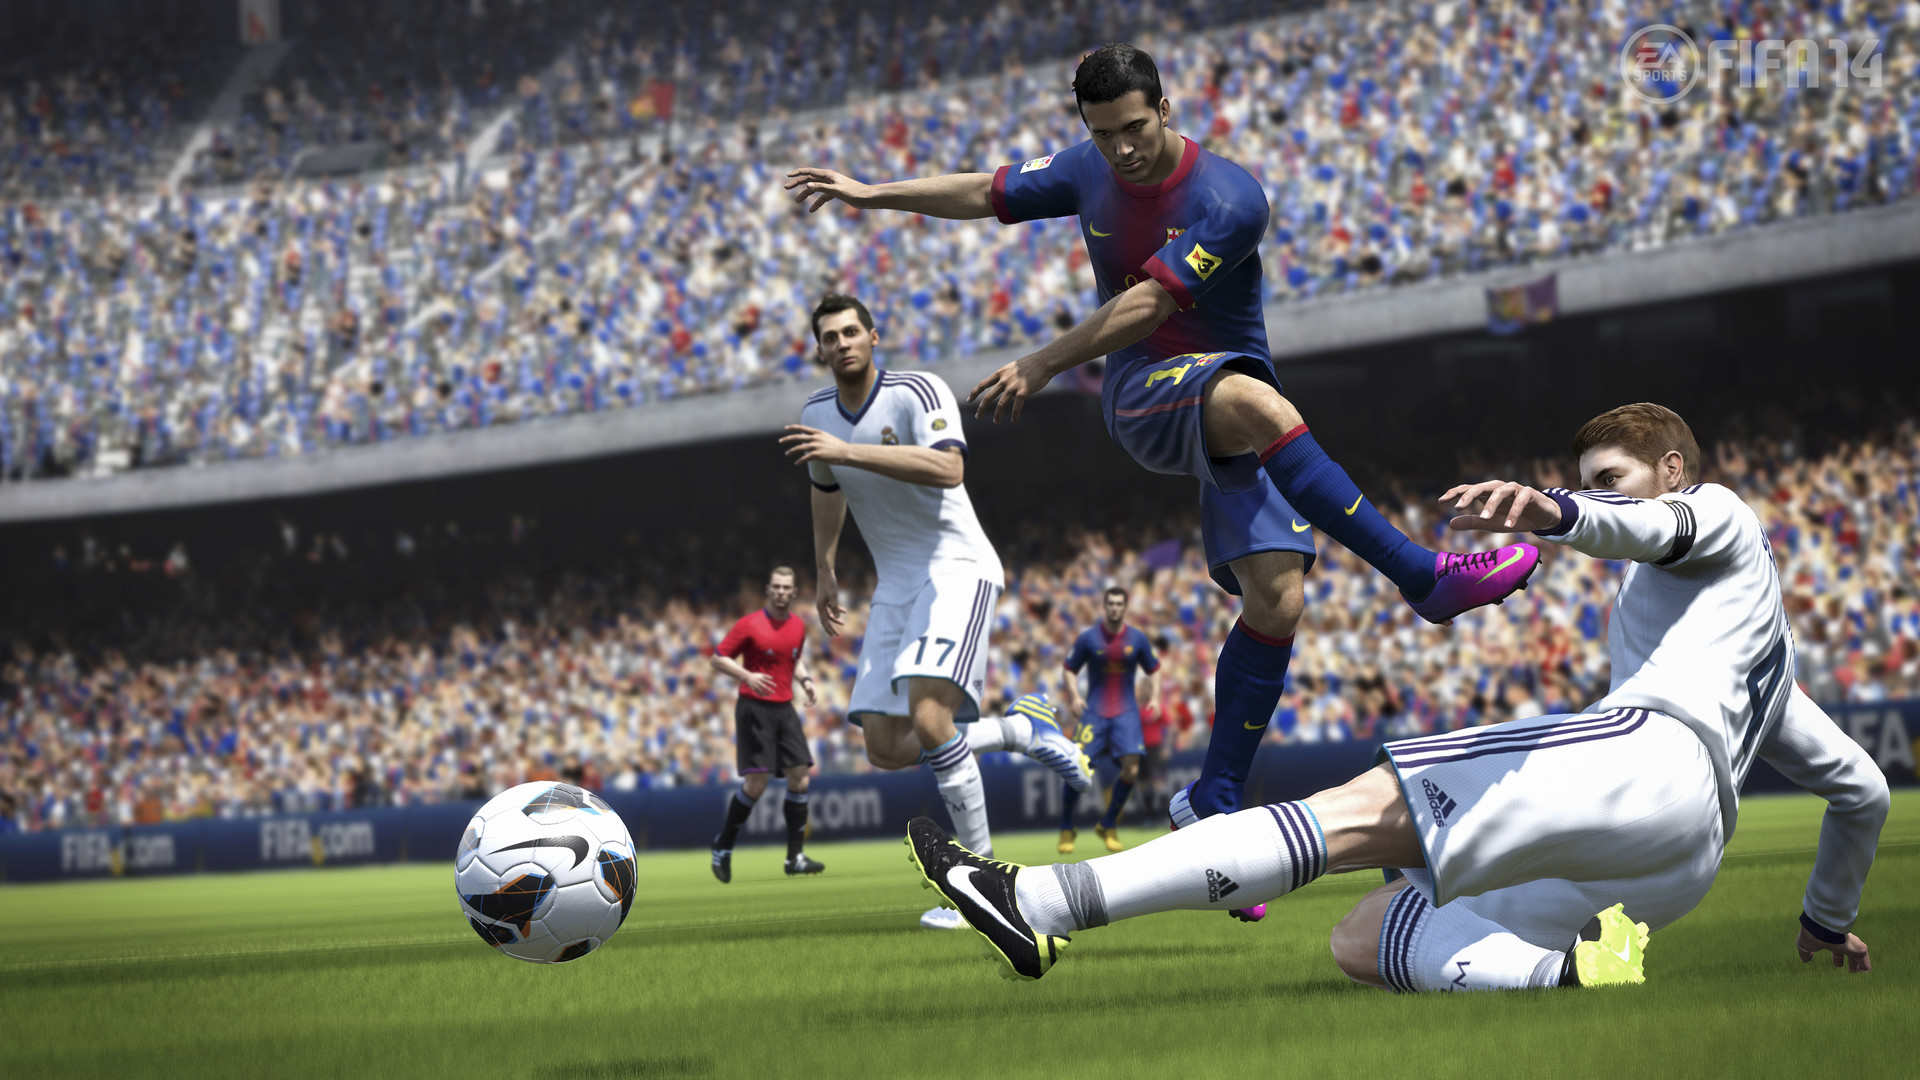 Fifa 14 next gen version on ps4 earns a 45 out of 5 rating fifa 14 next gen version on ps4 earns a 45 out of 5 rating product review world soccer talk voltagebd Images